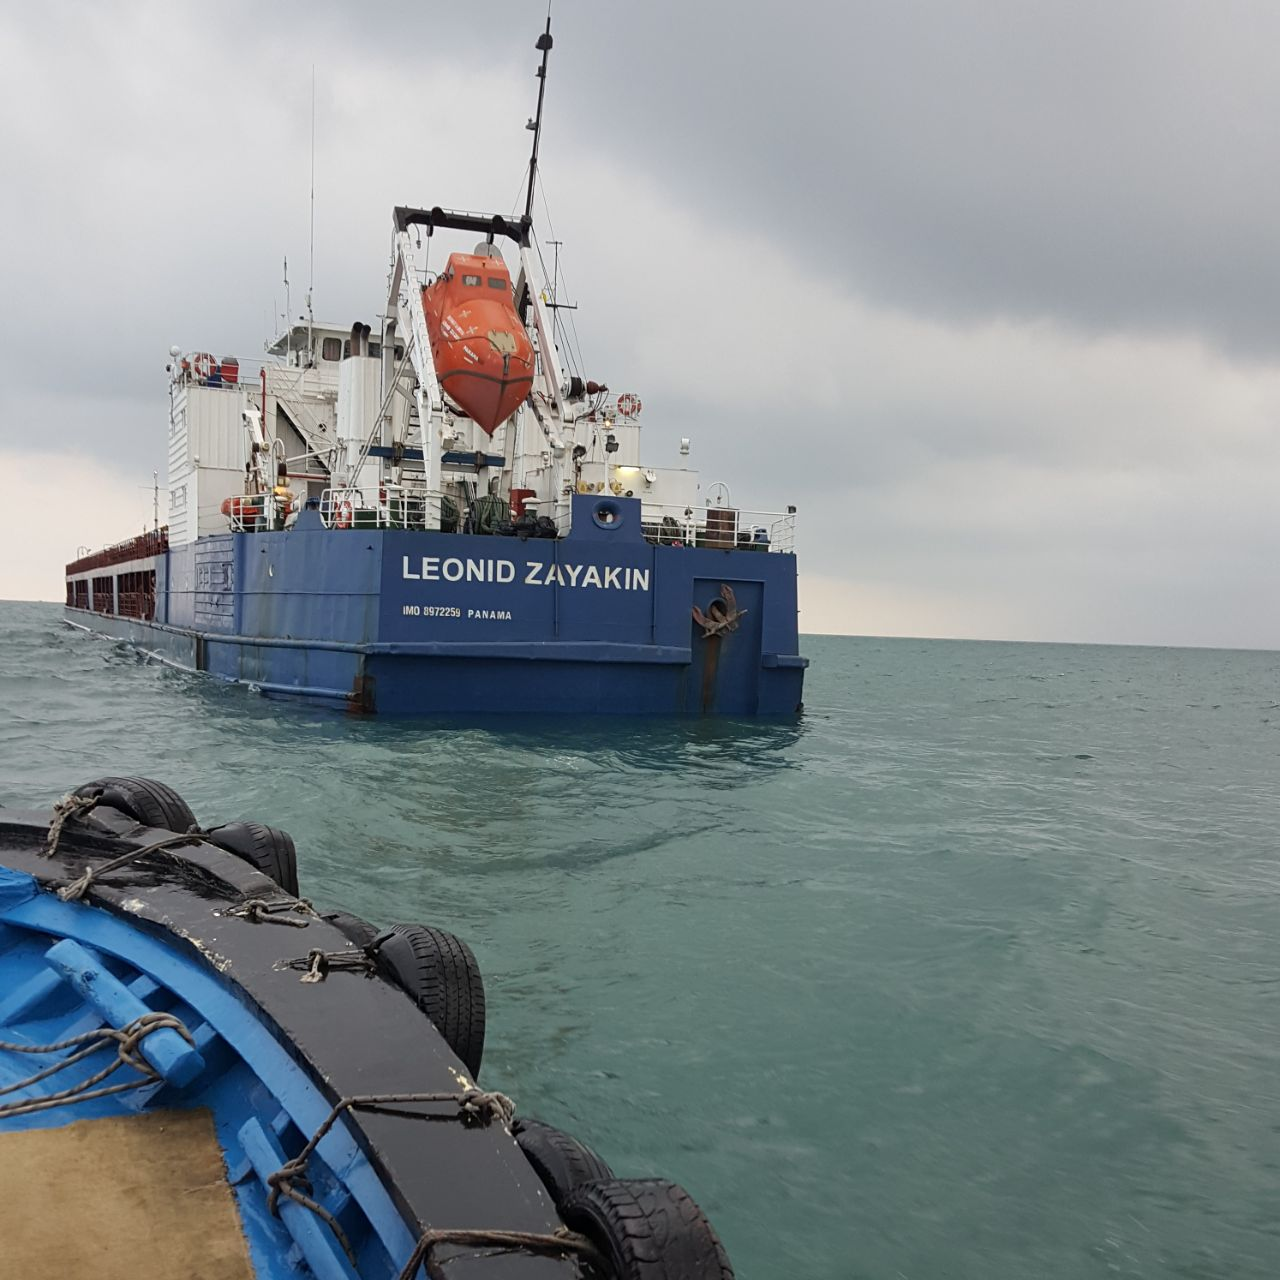 MV LEONID ZAYAKIN- COAL DISCHARGING OPERATIONS AT MERSIN INTERNATIONAL PORT